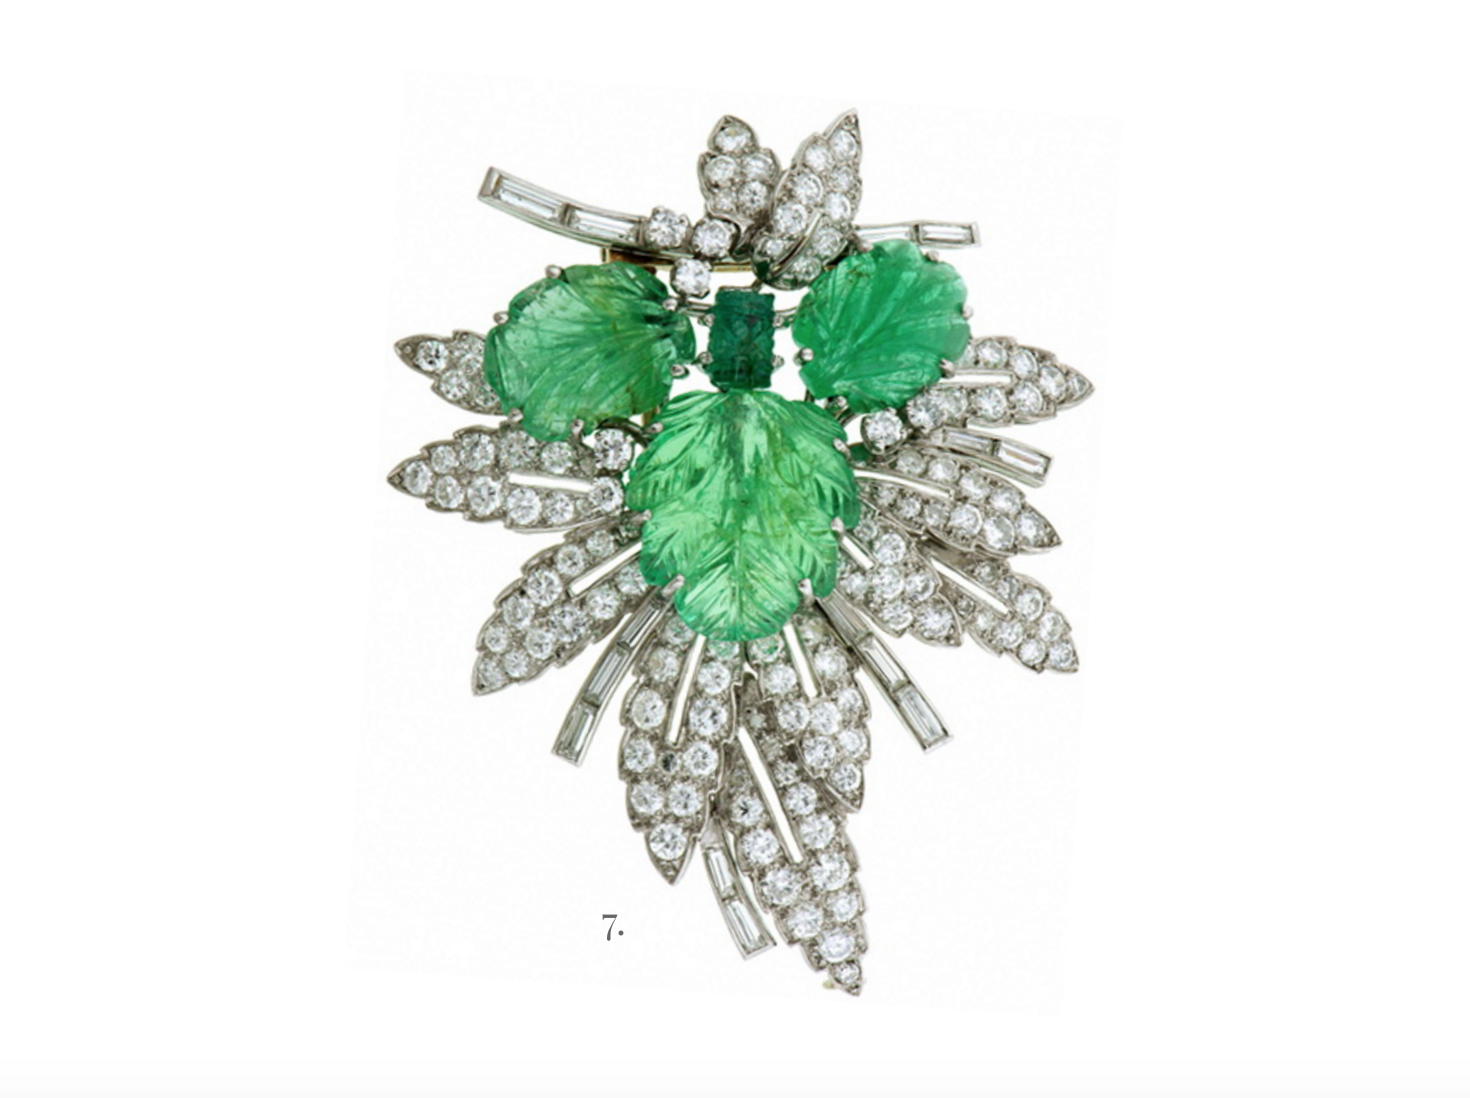 Vintage carved emerald and diamond brooch from Doyle & Doyle.